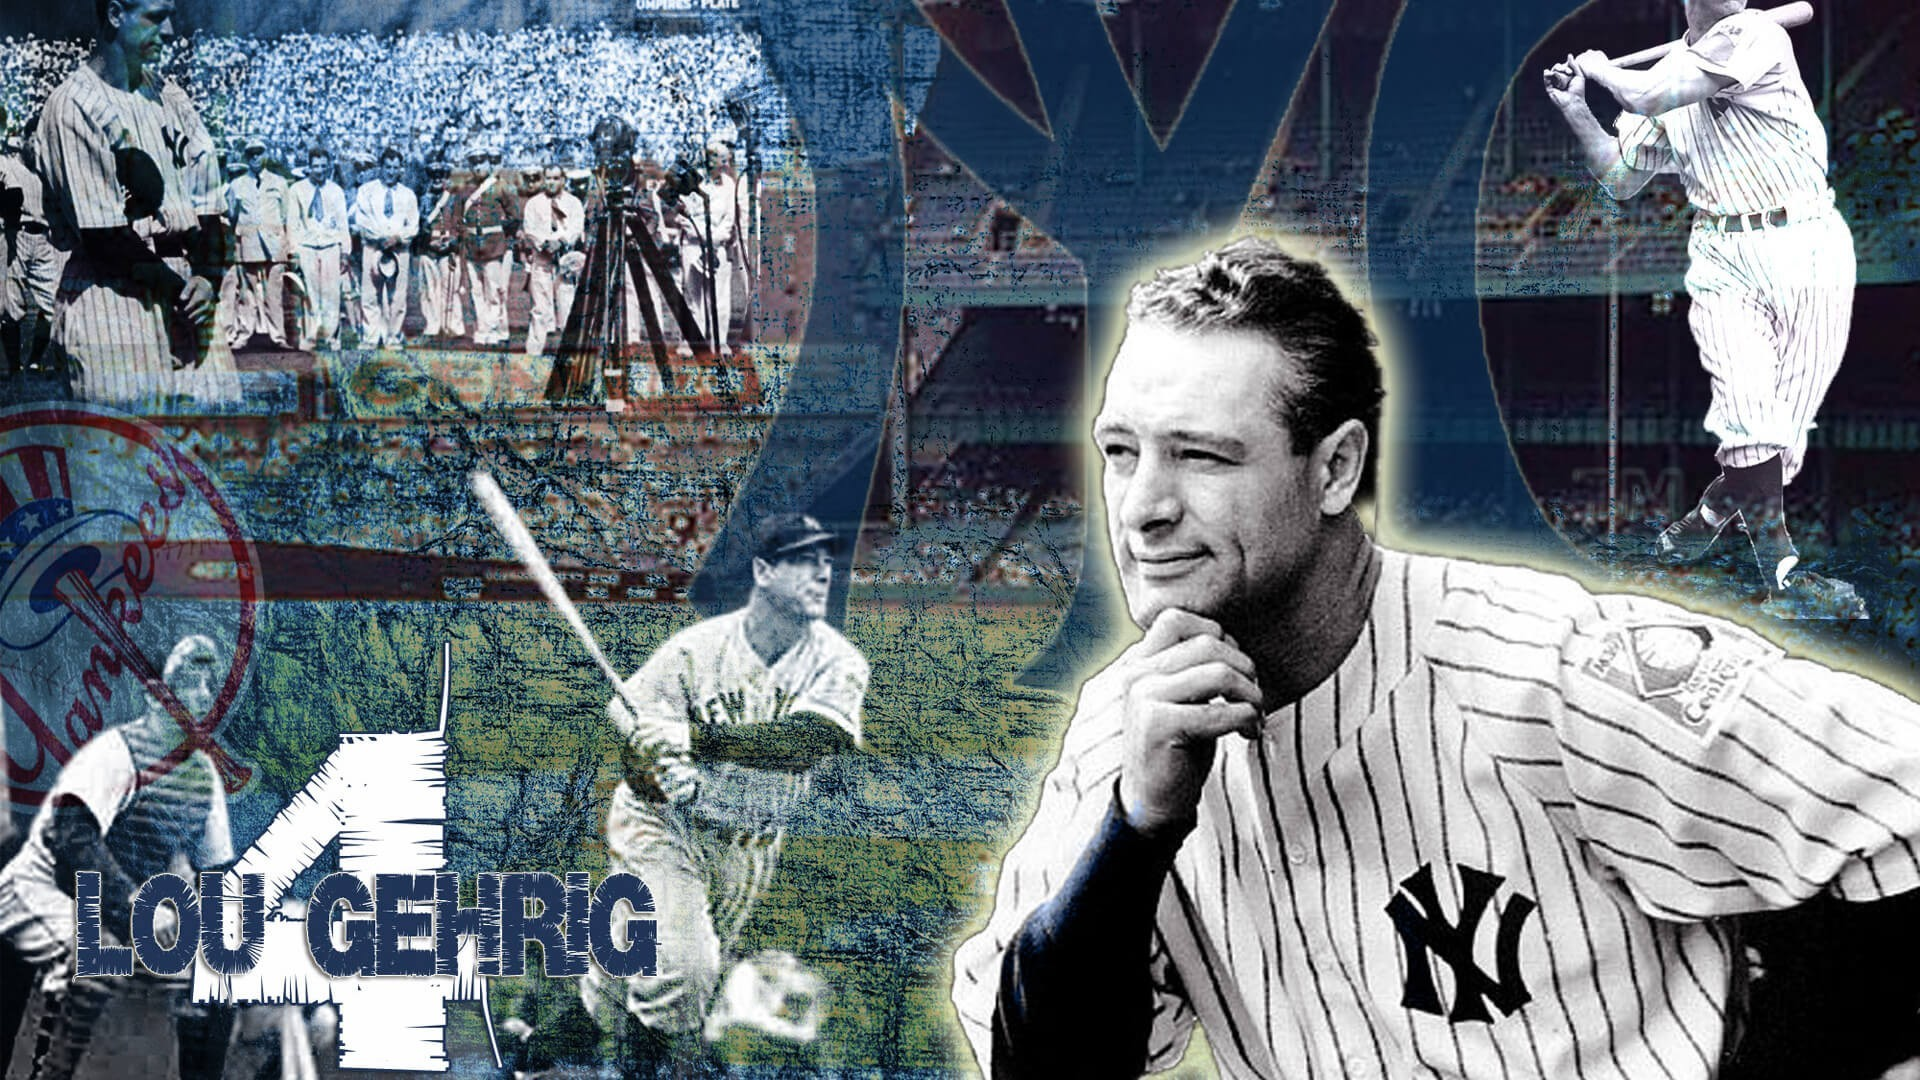 Res: 1920x1080, New York Yankee Wallpaper Lovely New York Yankees Wallpaper for Ipad